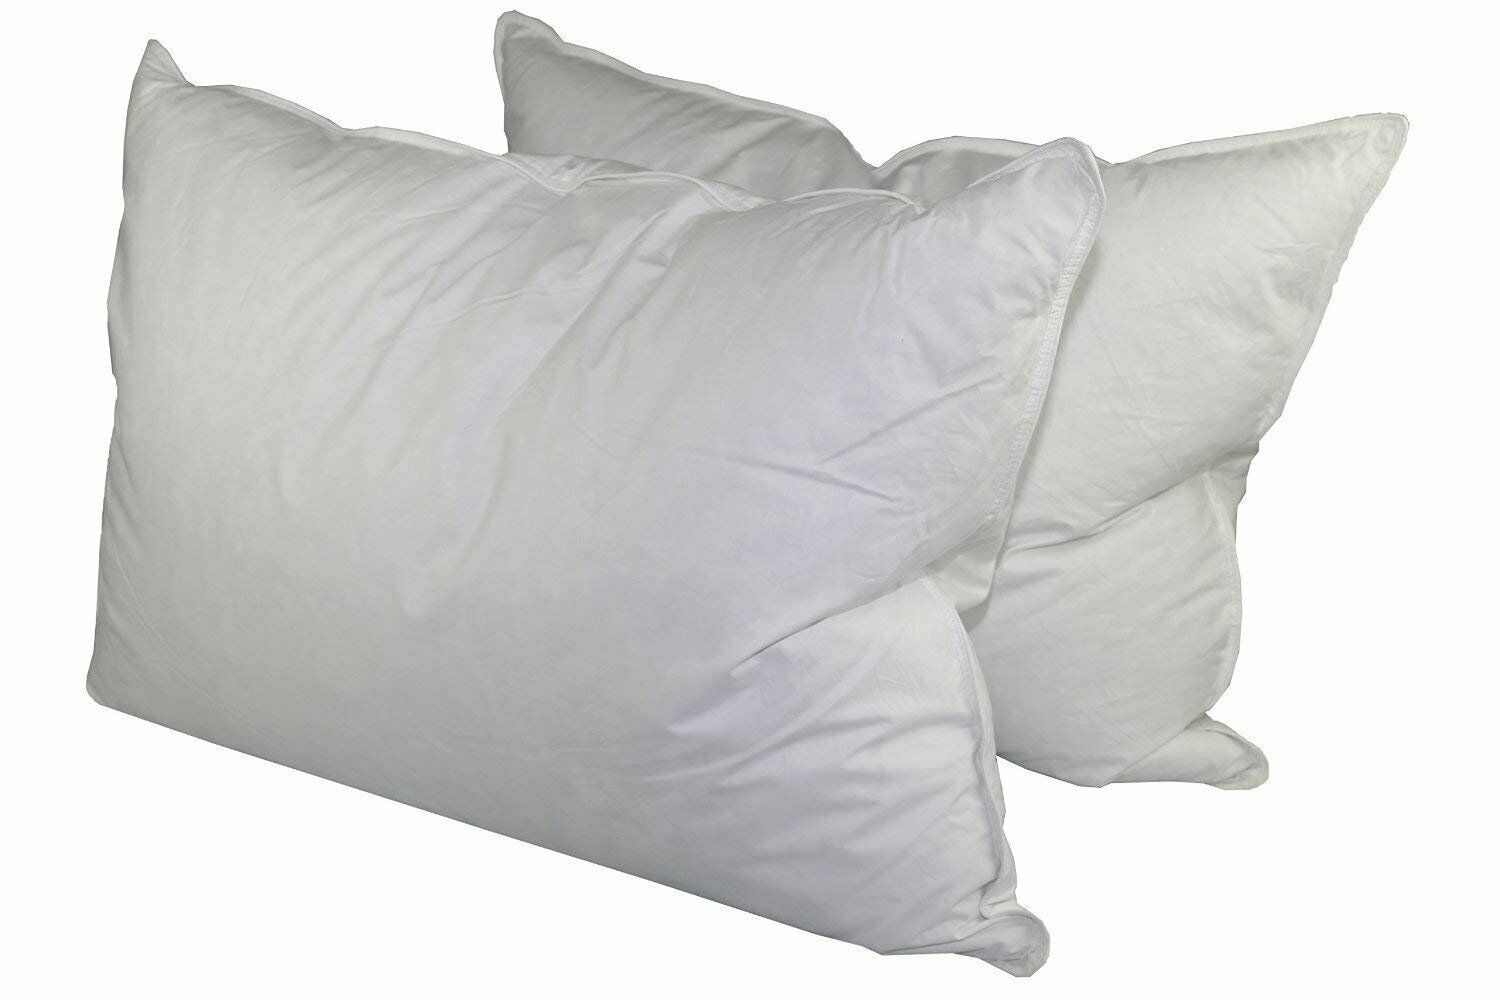 Manchester Mills Down Dreams Standard Size Medium Firm Pillow Set - 2 Pillows